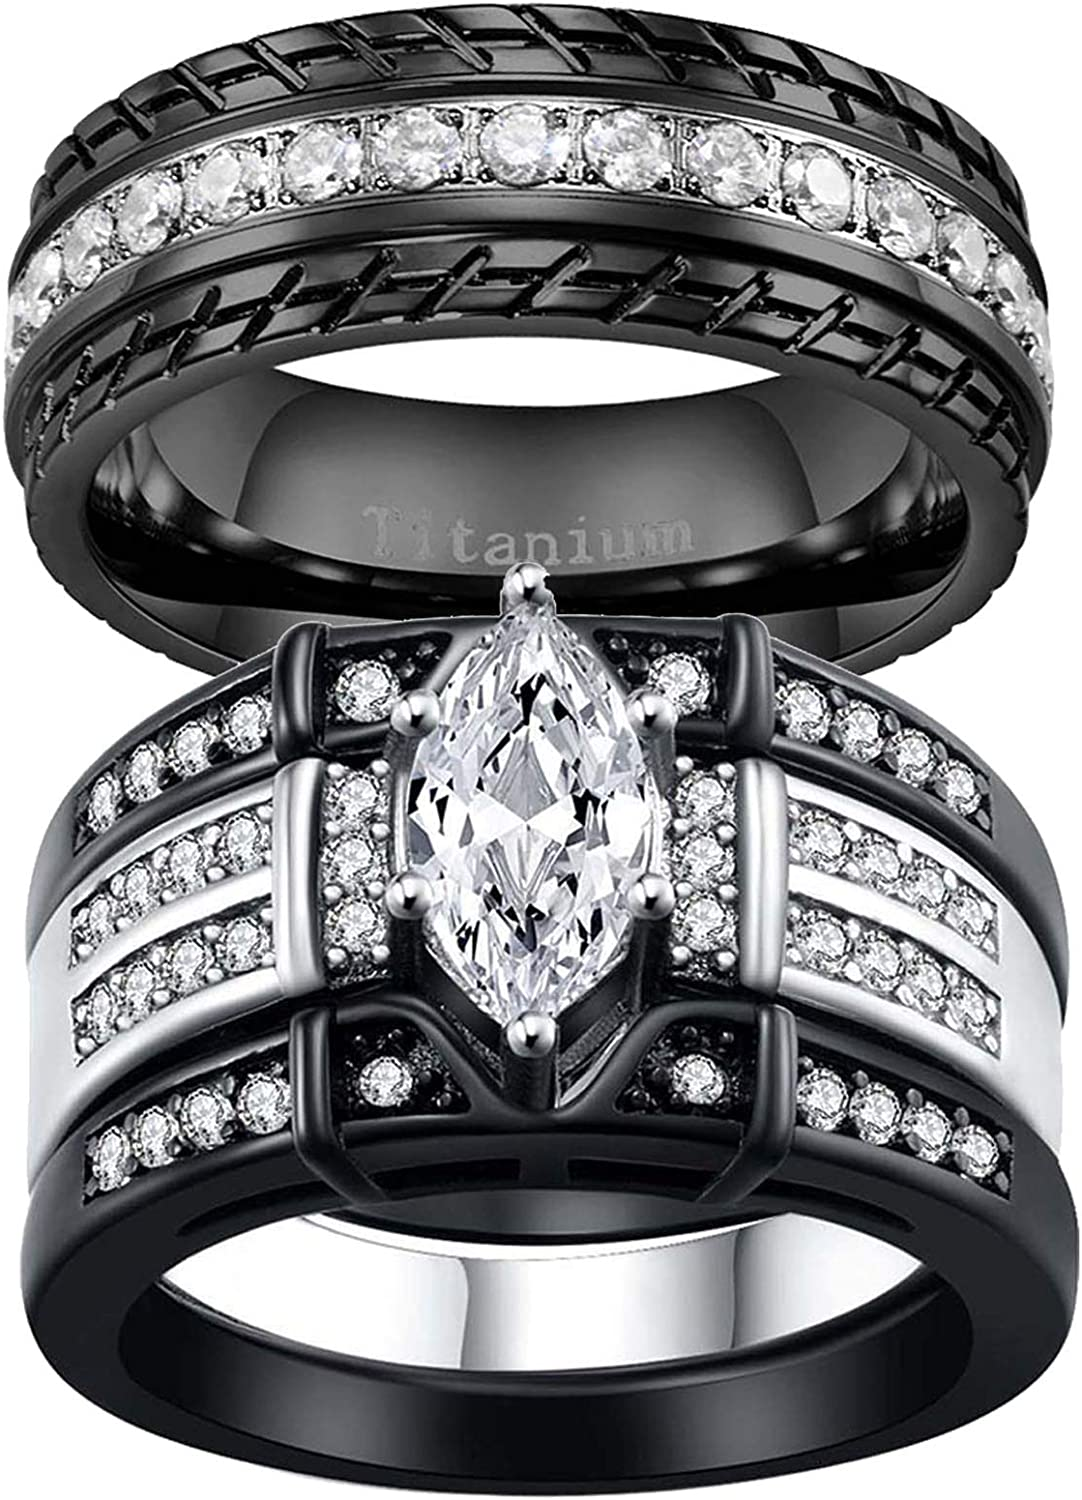 ringheart 2 Lowest price challenge Black Rings His and Max 88% OFF Marquise Hers Ring Couple